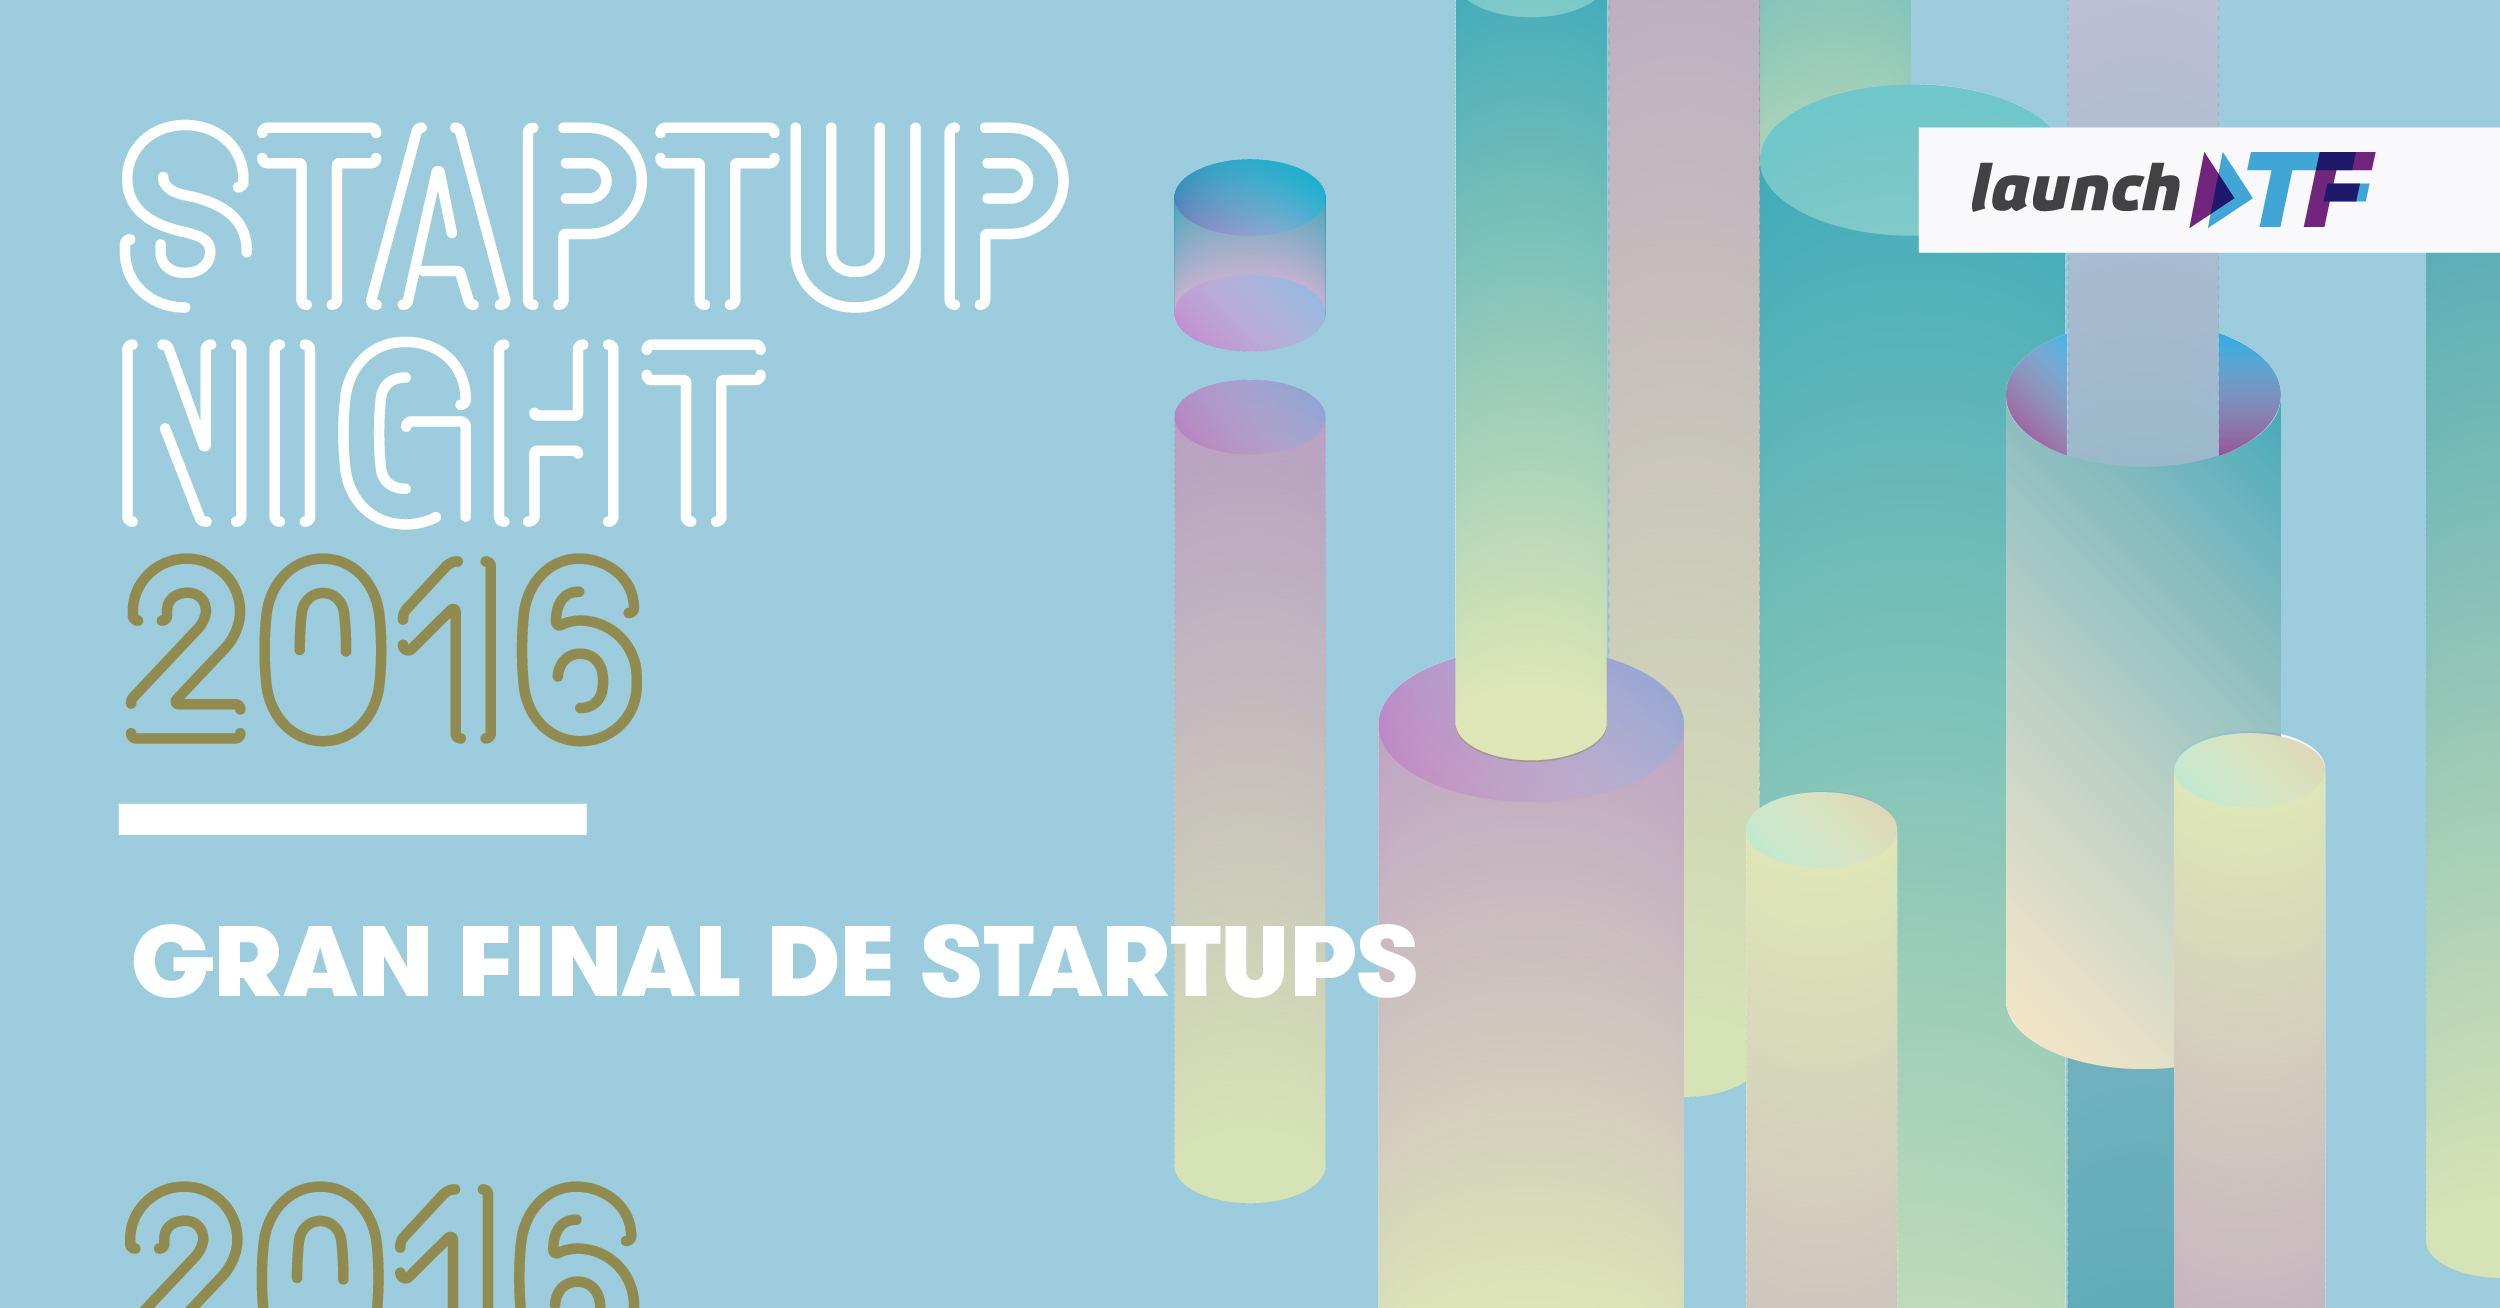 launchTF Startup Night 2016, la final